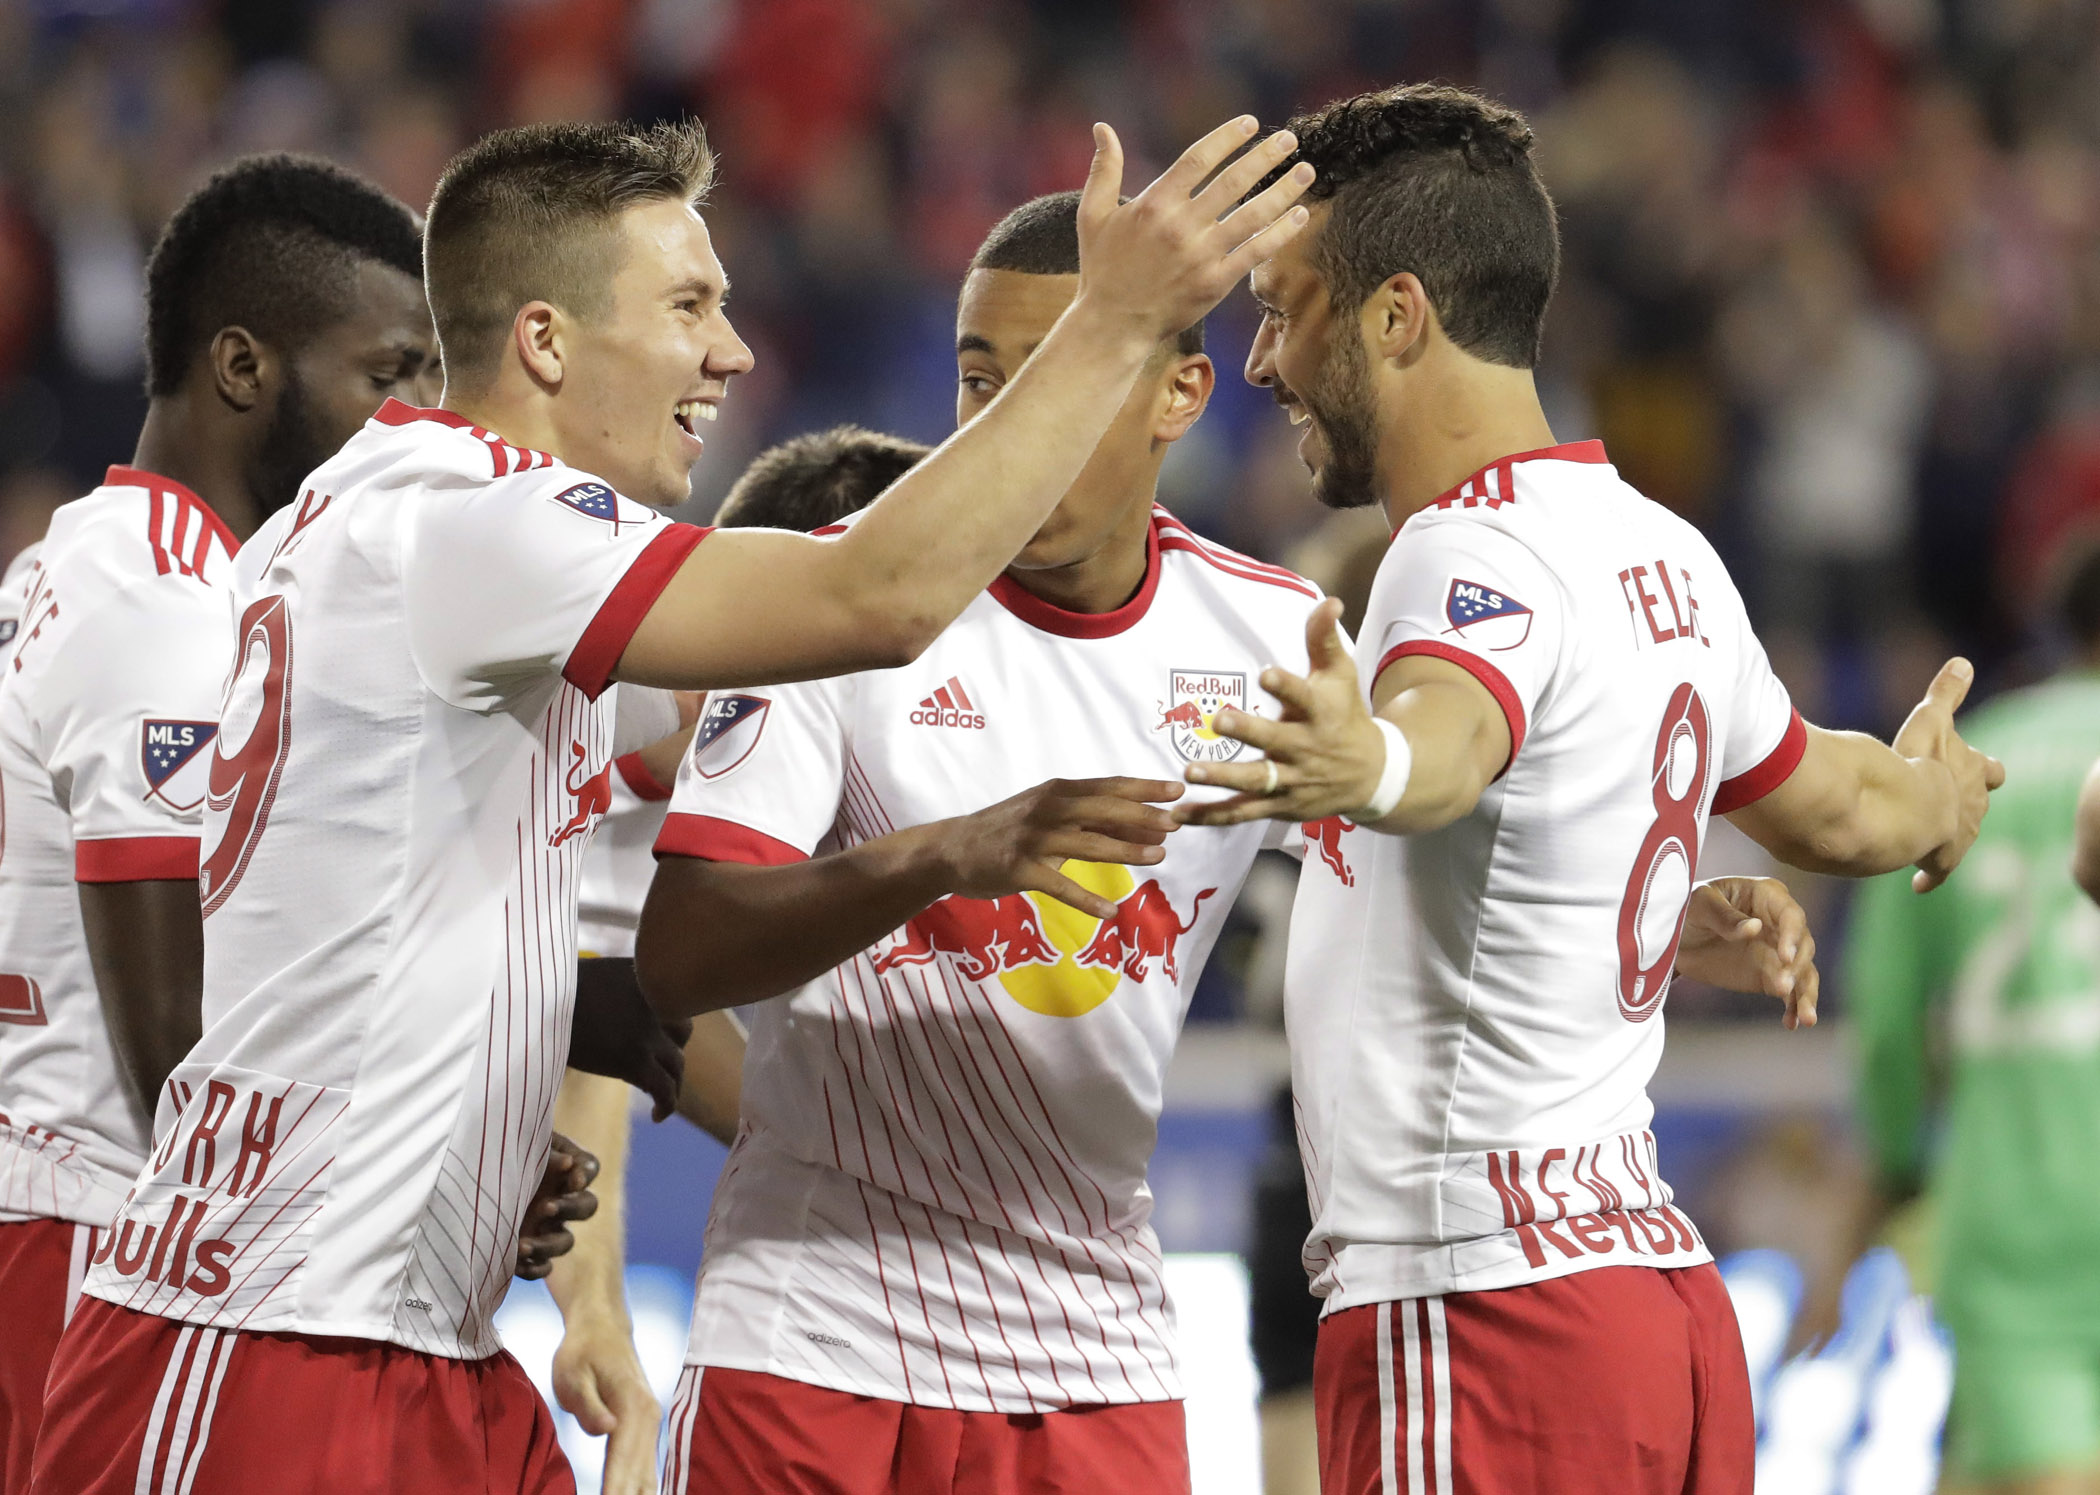 New York Red Bulls midfielder Alex Muyl (left) celebrates his goal with Felipe Martins, (right) and teammates during the first half of an MLS soccer match against Columbus Crew in Harrison, N.J on Saturday.